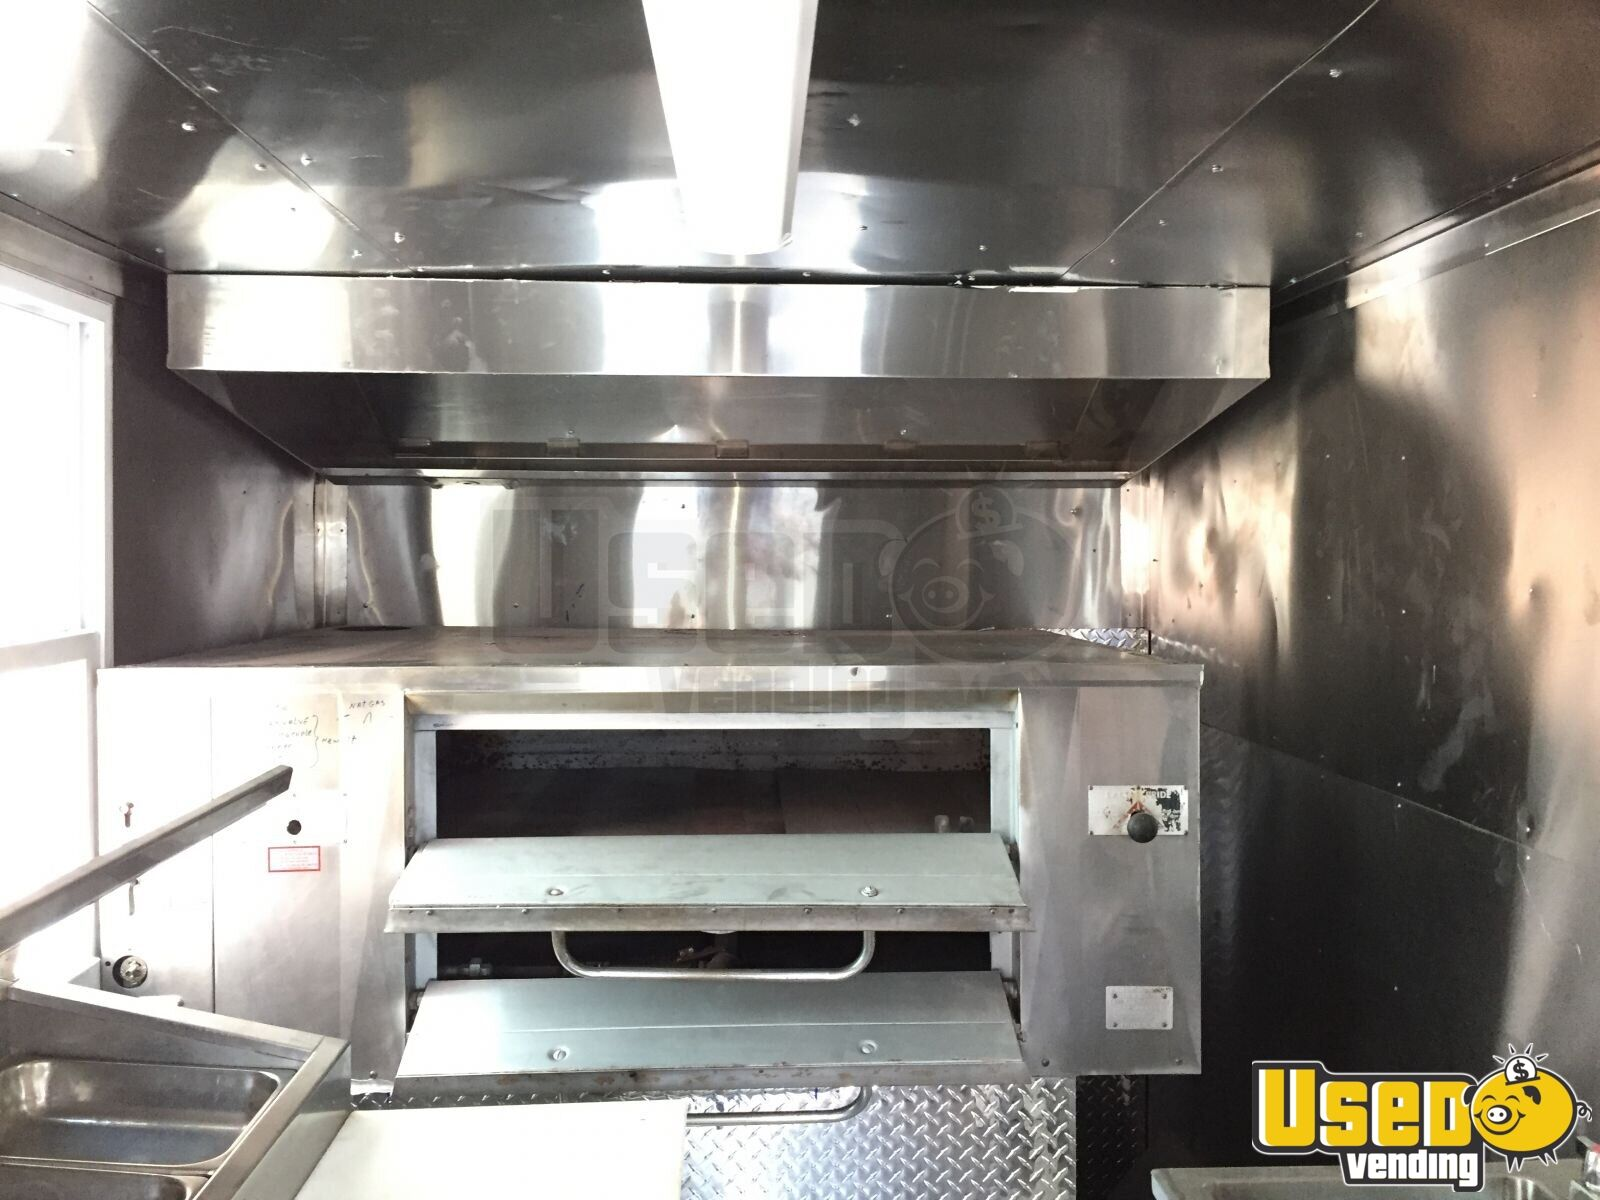 1997 Ultramax Food Truck Stainless Steel Wall Covers Maryland Gas Engine for Sale - 4